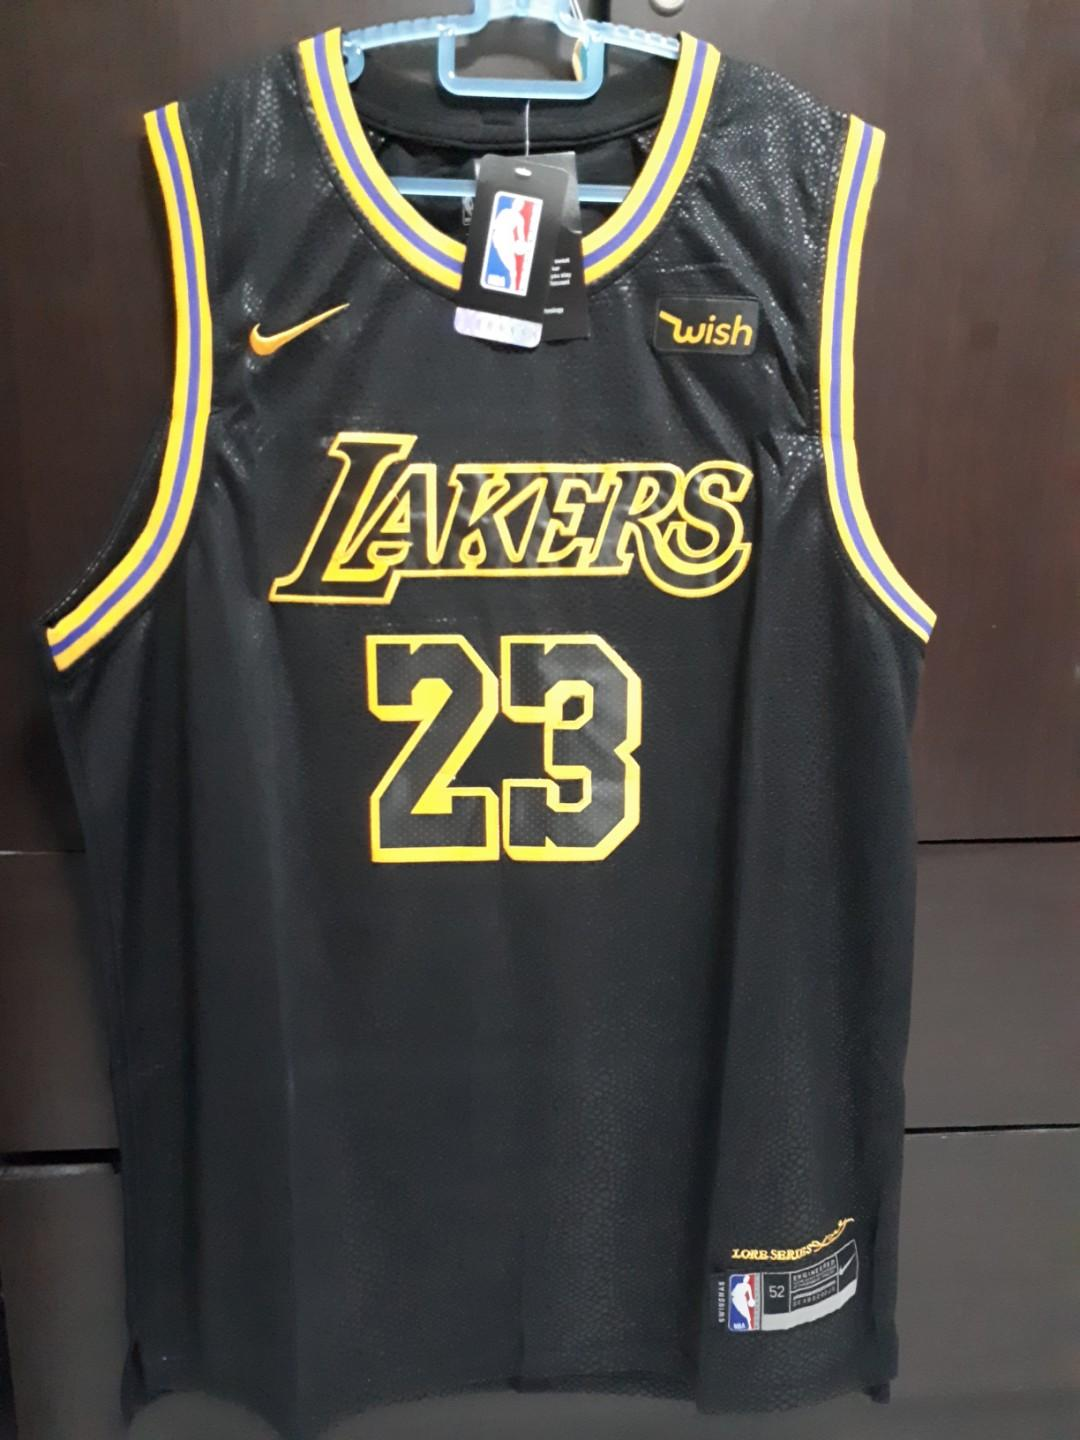 meet 44d1a fa43f NBA Jersey Lakers Lebron, Sports, Sports Apparel on Carousell